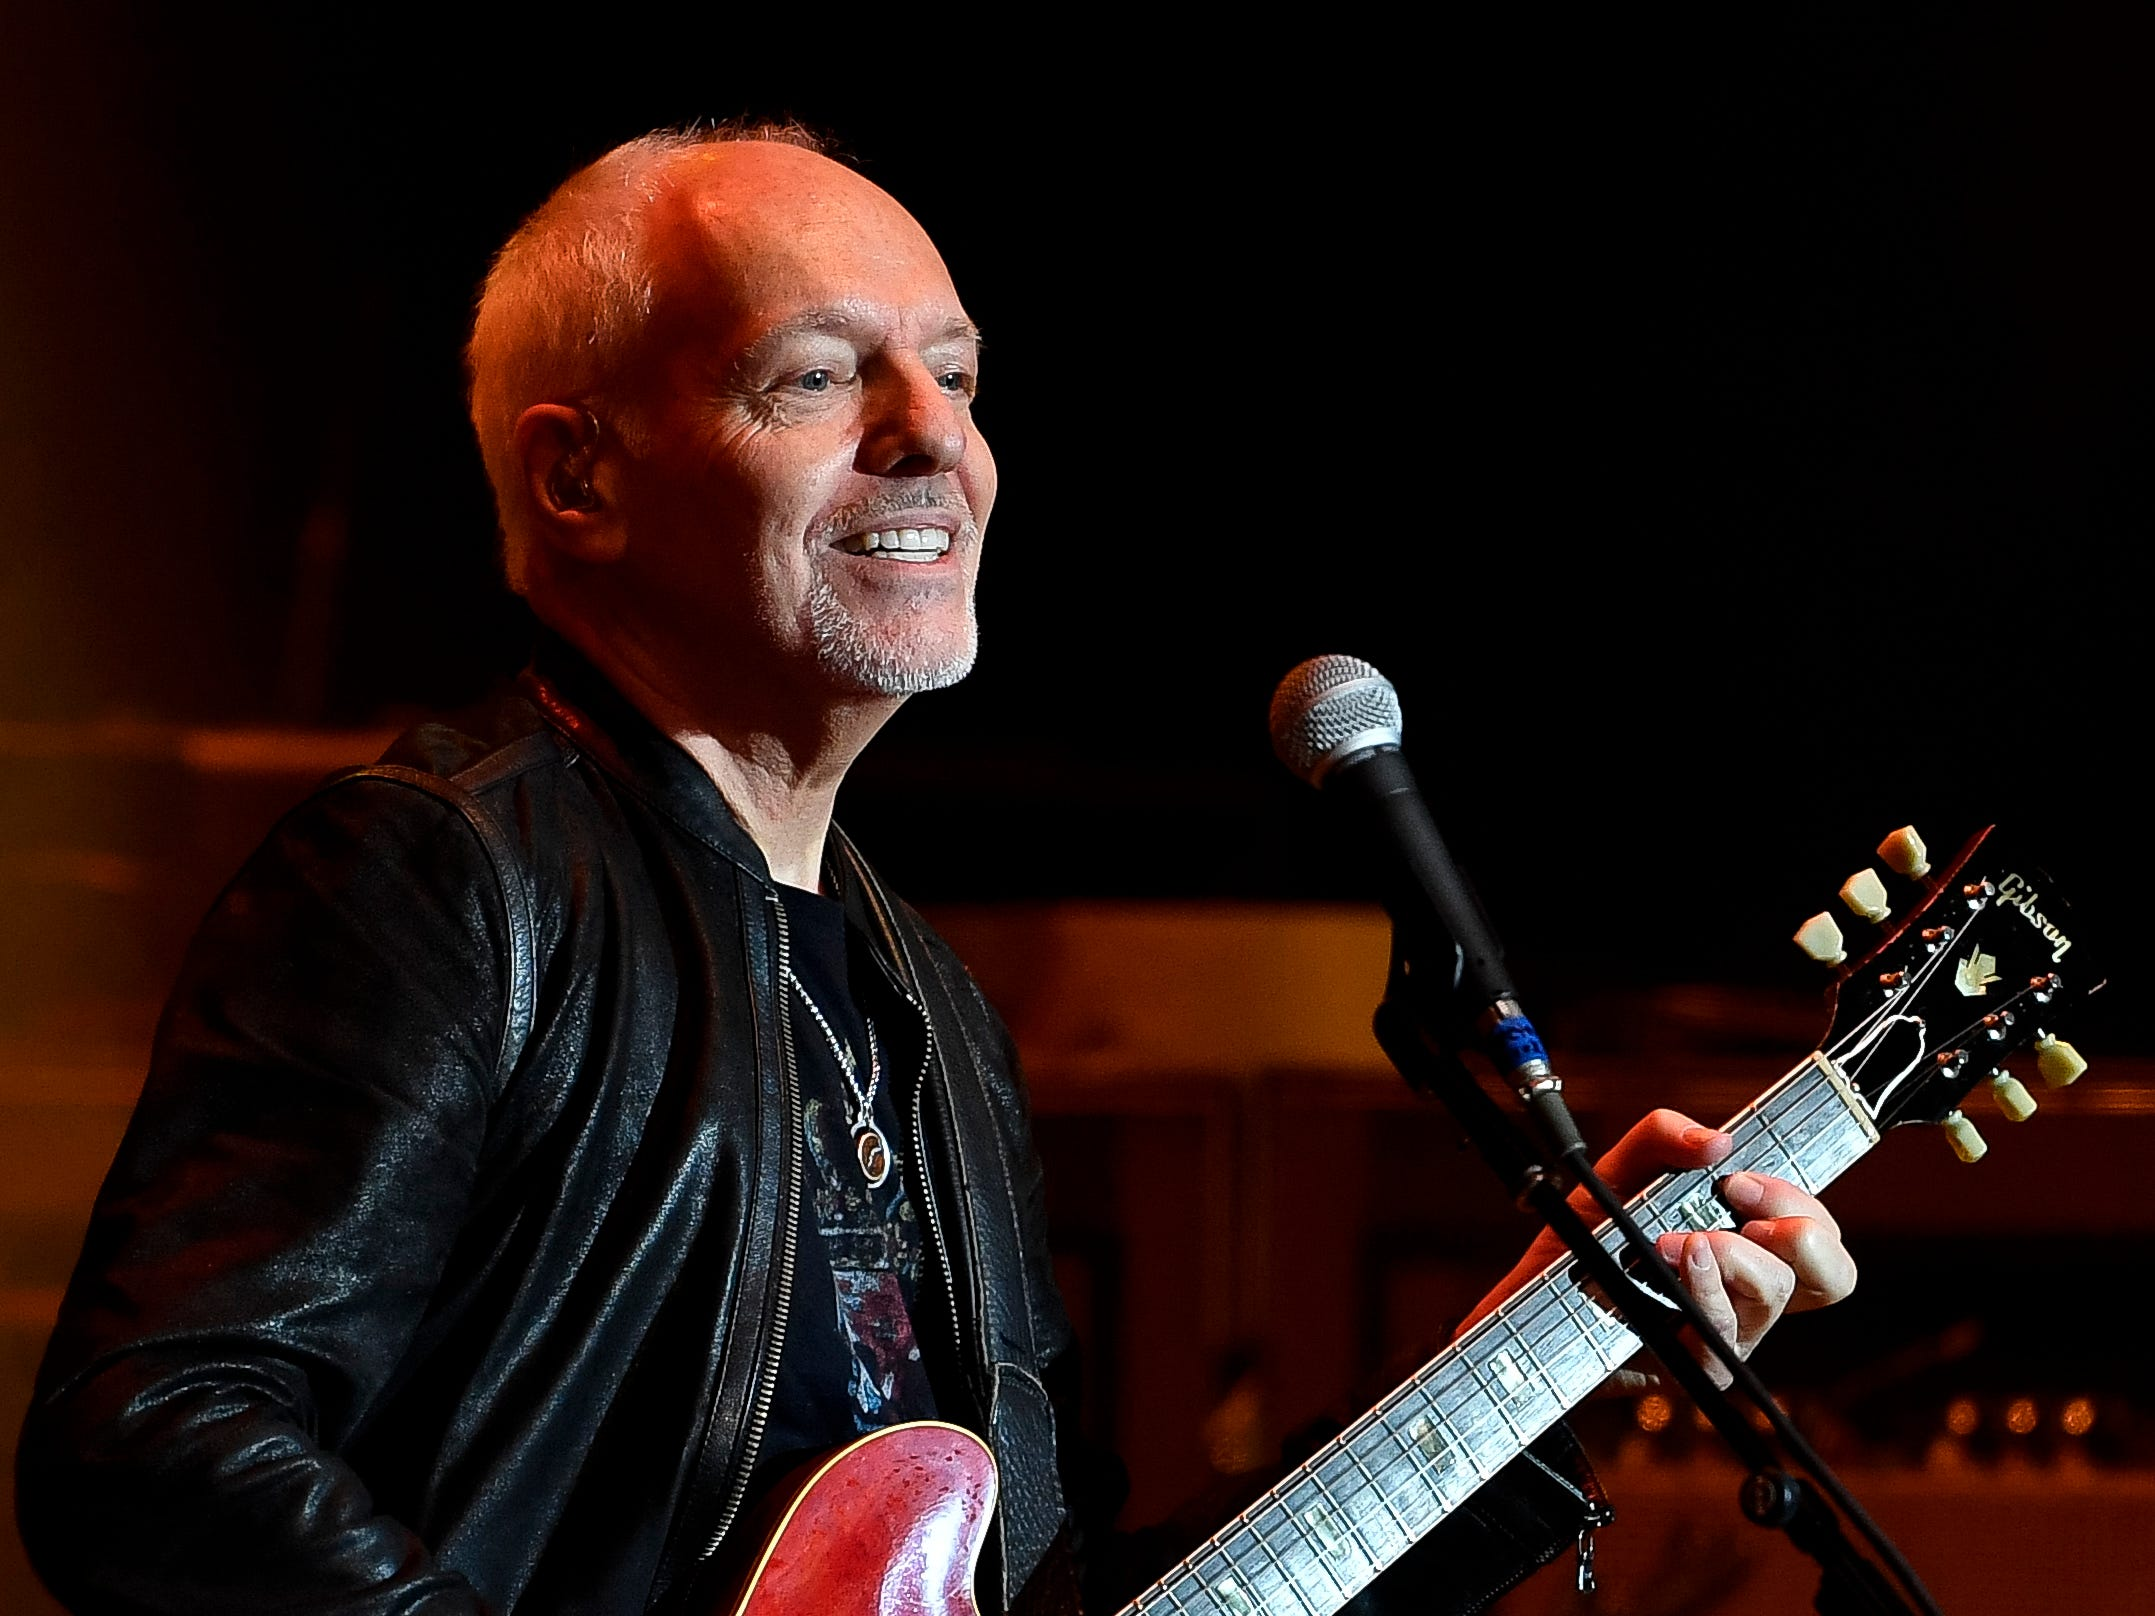 Peter Frampton performs during the Jack Daniel's Music City Midnight: New Year's Eve event at Bicentennial Capitol Mall State Park in Nashville, Tenn., Monday, Dec. 31, 2018.